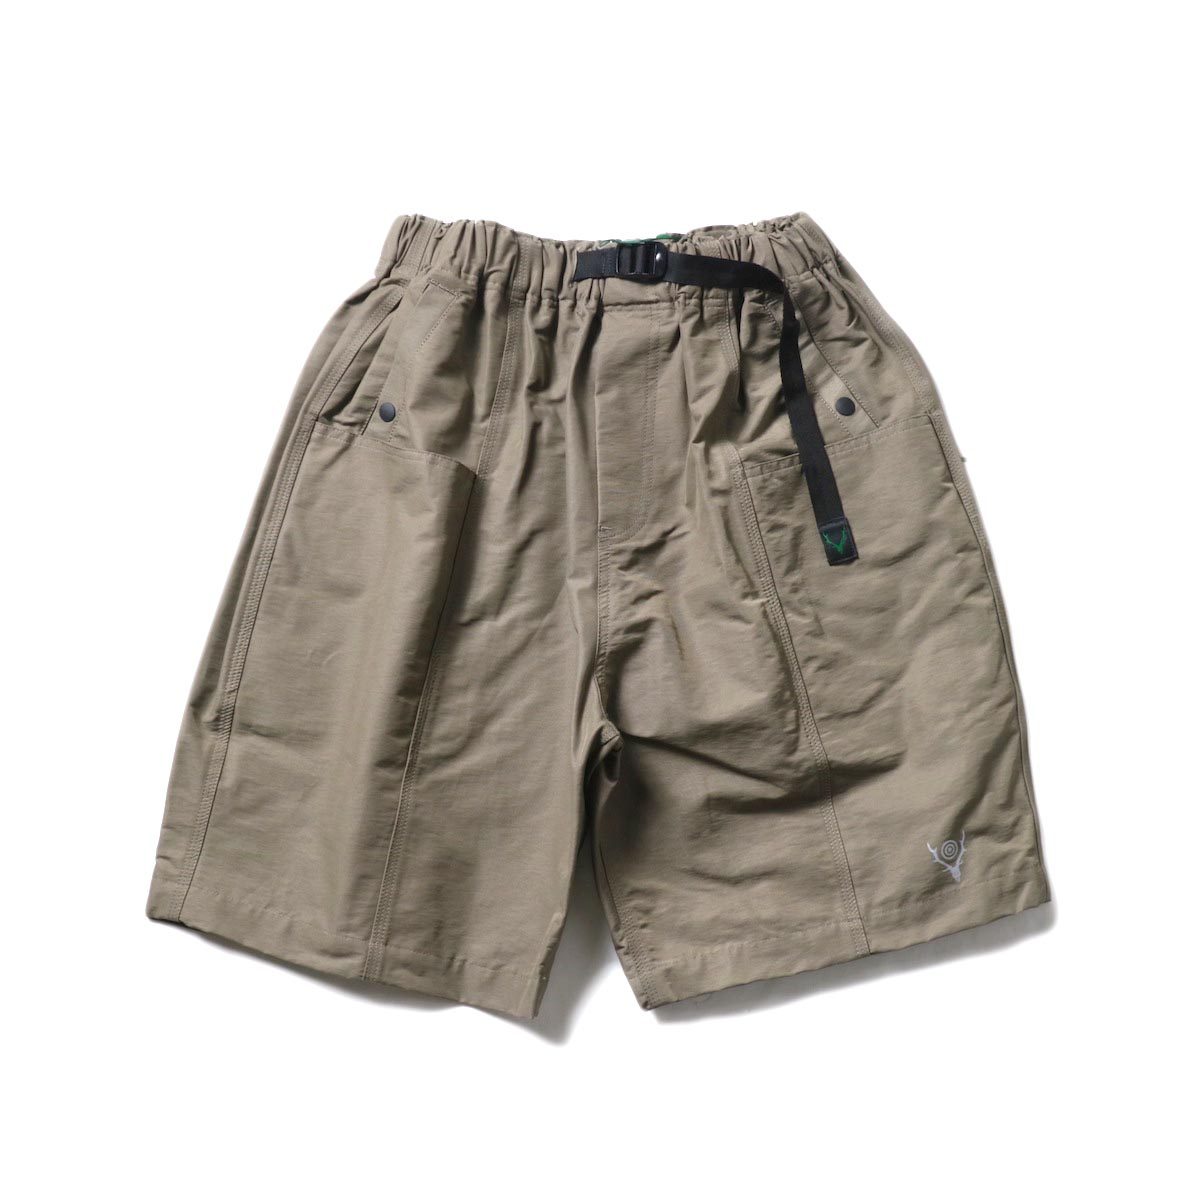 South2 West8 / BELTED C.S. SHORT - C/N GROSGRAIN (Taupe)